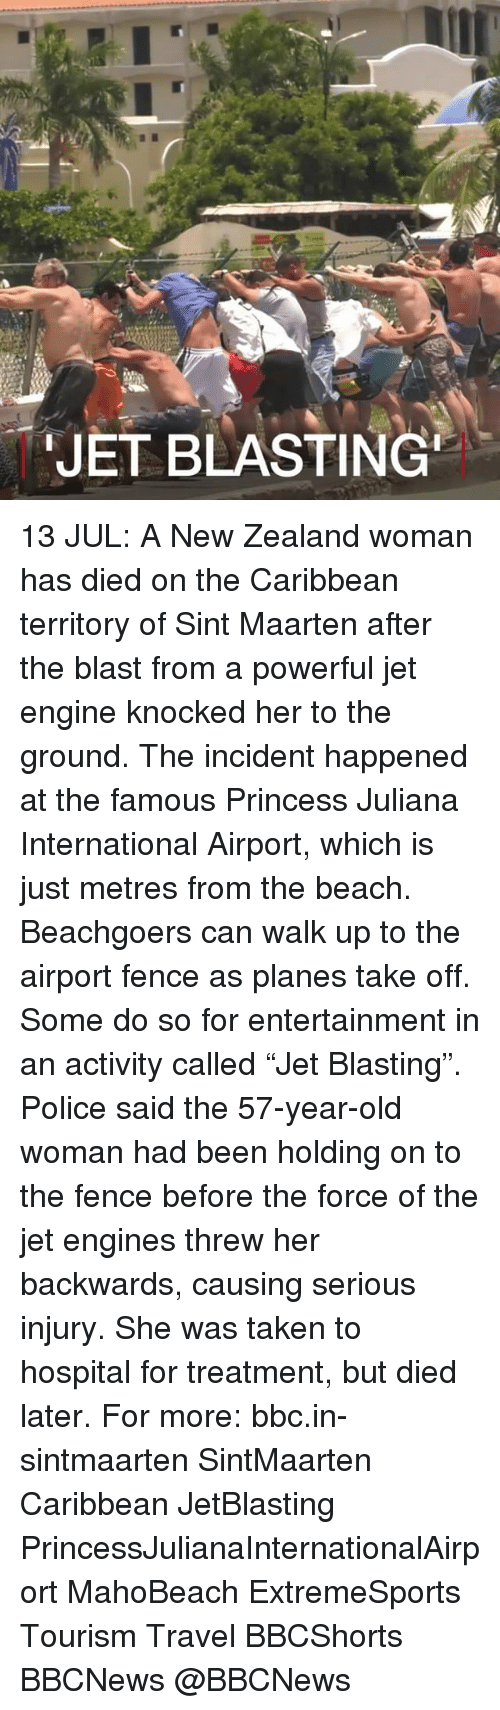 "Threws: JET BLASTING 13 JUL: A New Zealand woman has died on the Caribbean territory of Sint Maarten after the blast from a powerful jet engine knocked her to the ground. The incident happened at the famous Princess Juliana International Airport, which is just metres from the beach. Beachgoers can walk up to the airport fence as planes take off. Some do so for entertainment in an activity called ""Jet Blasting"". Police said the 57-year-old woman had been holding on to the fence before the force of the jet engines threw her backwards, causing serious injury. She was taken to hospital for treatment, but died later. For more: bbc.in-sintmaarten SintMaarten Caribbean JetBlasting PrincessJulianaInternationalAirport MahoBeach ExtremeSports Tourism Travel BBCShorts BBCNews @BBCNews"